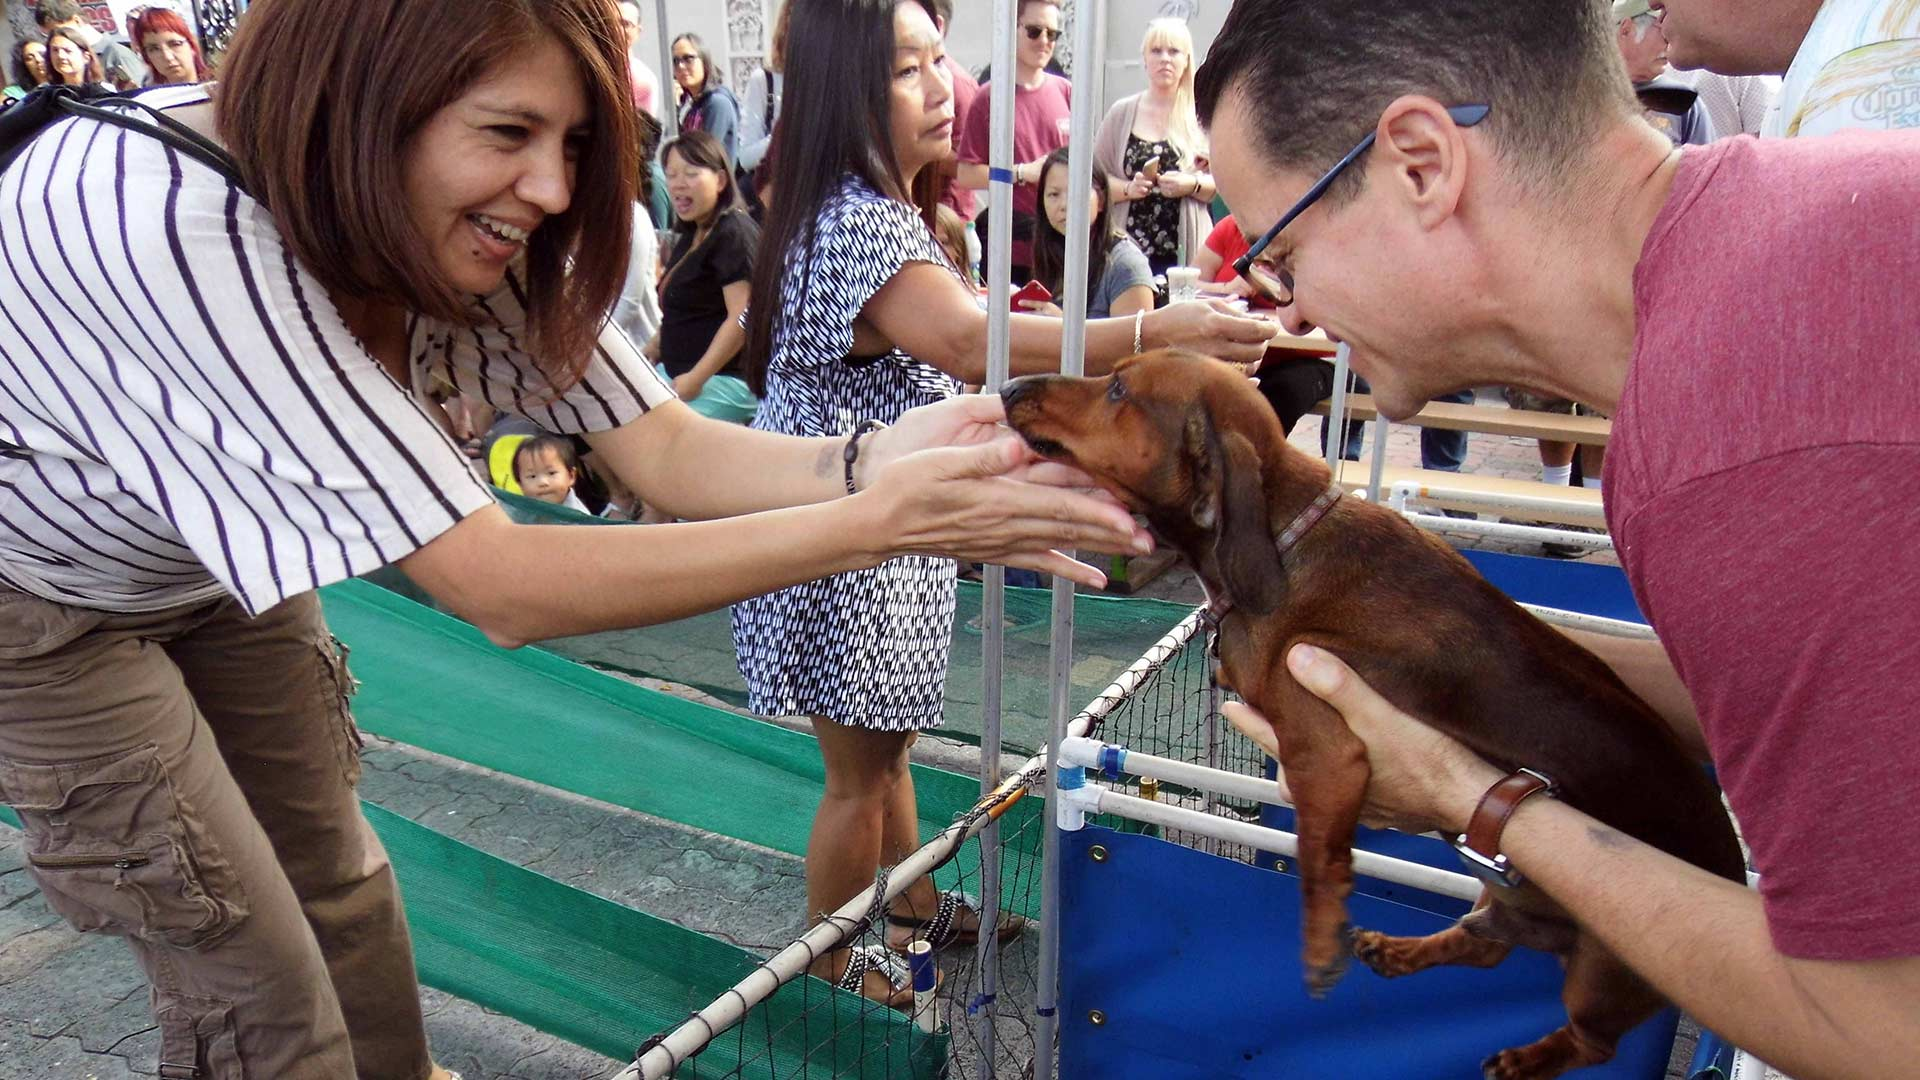 Woman coos at a dachshund being held up by another man